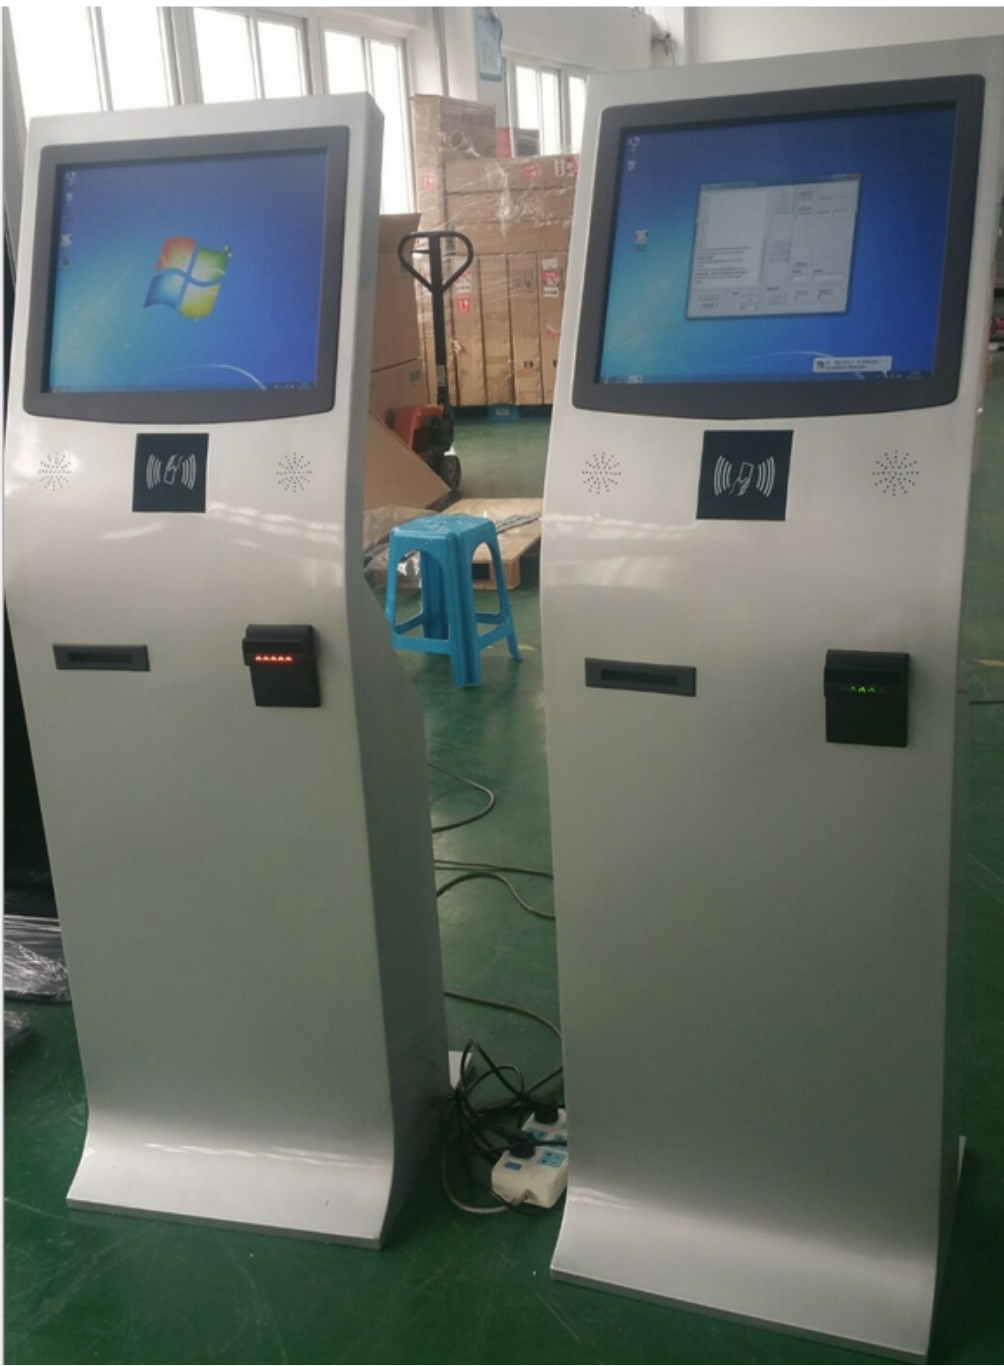 19 Inch Floor Stand Bill Payment Kiosk With Touch Screen